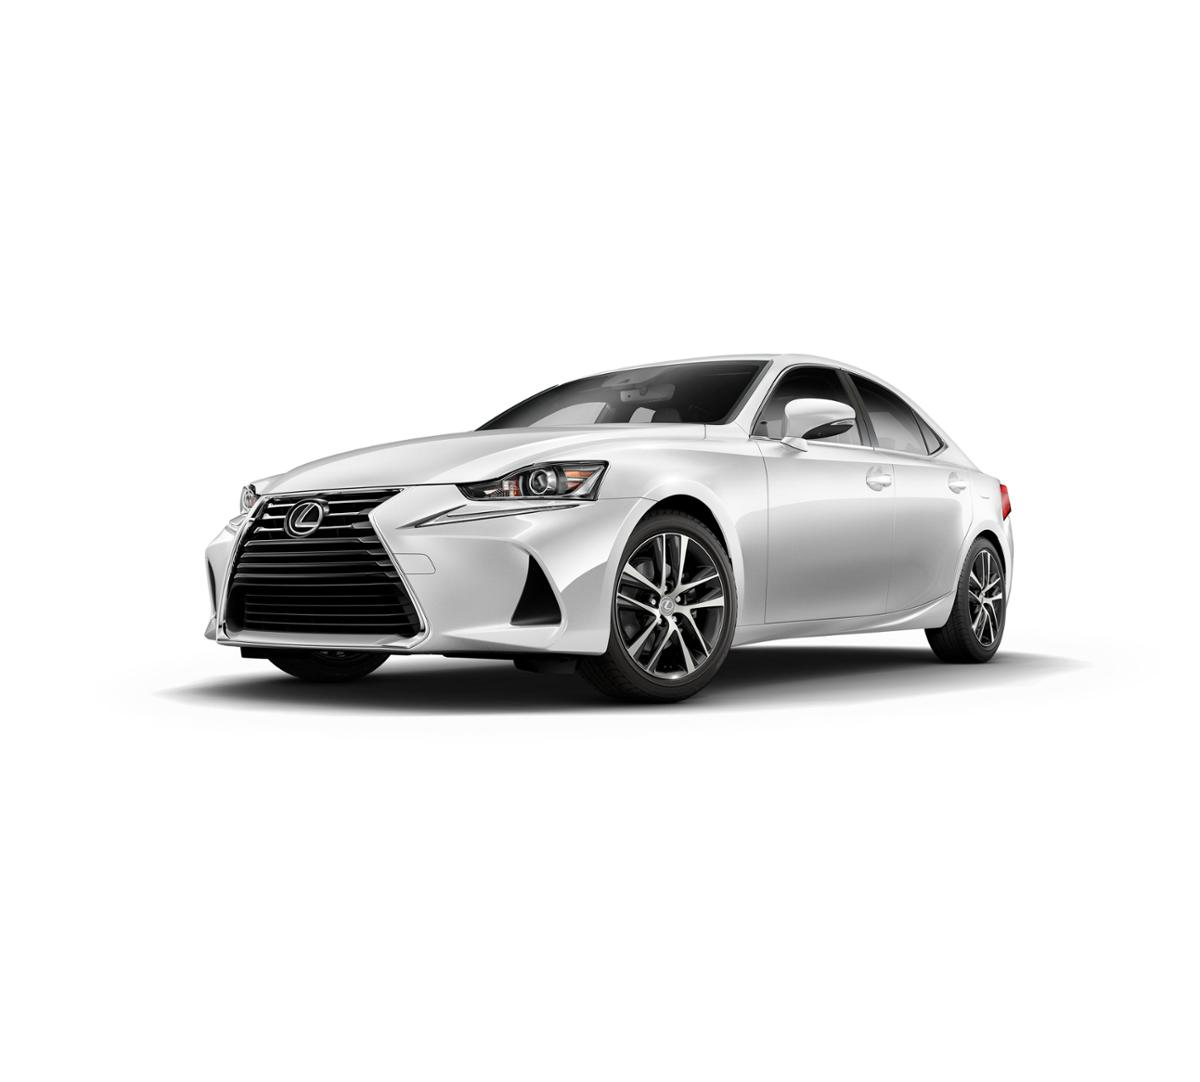 2018 Lexus IS 300 Vehicle Photo in Henderson, NV 89011